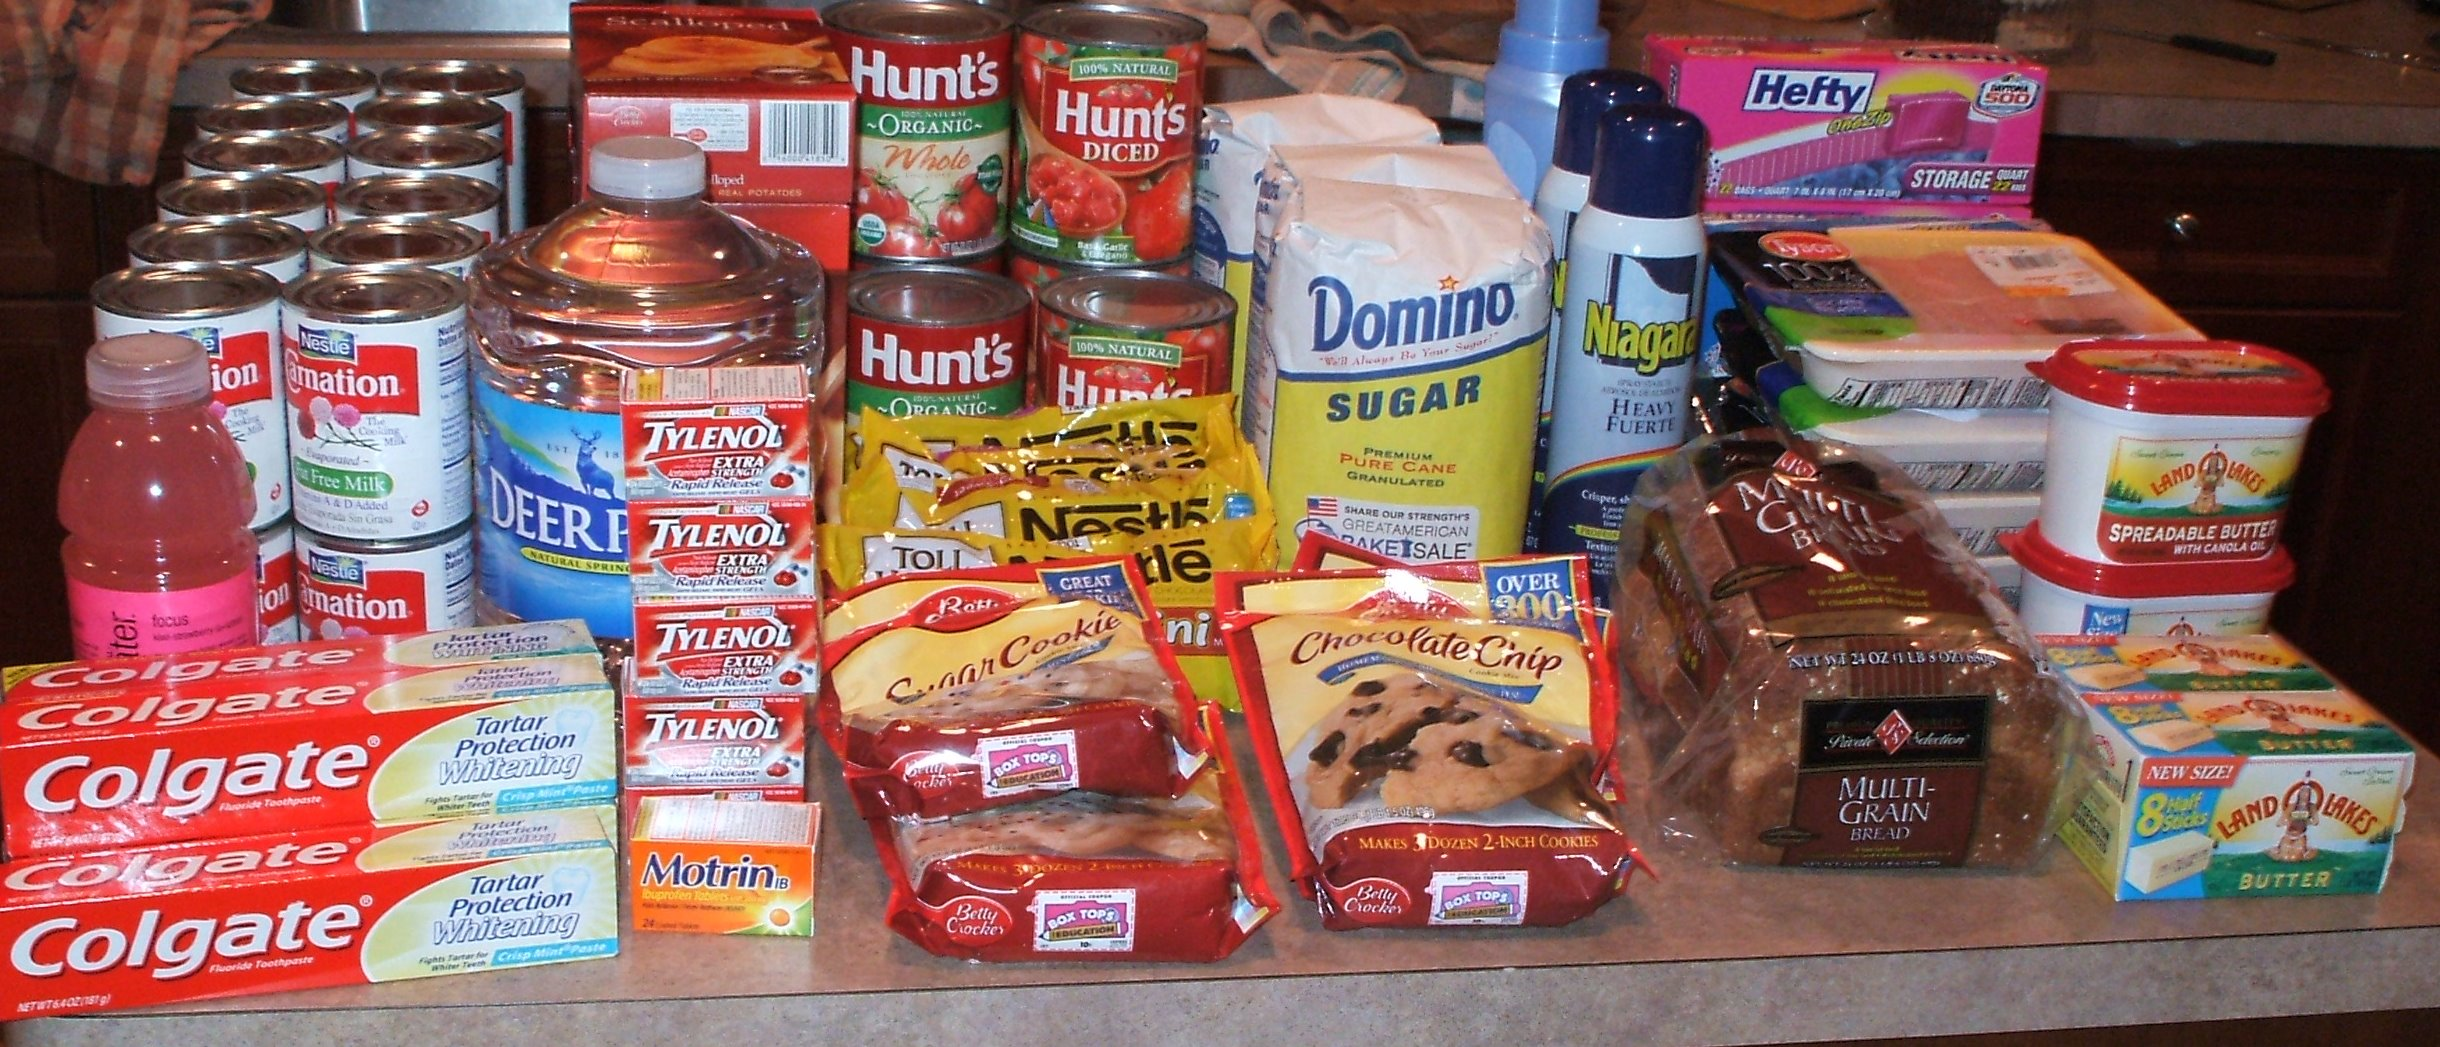 Stockpiling Groceries